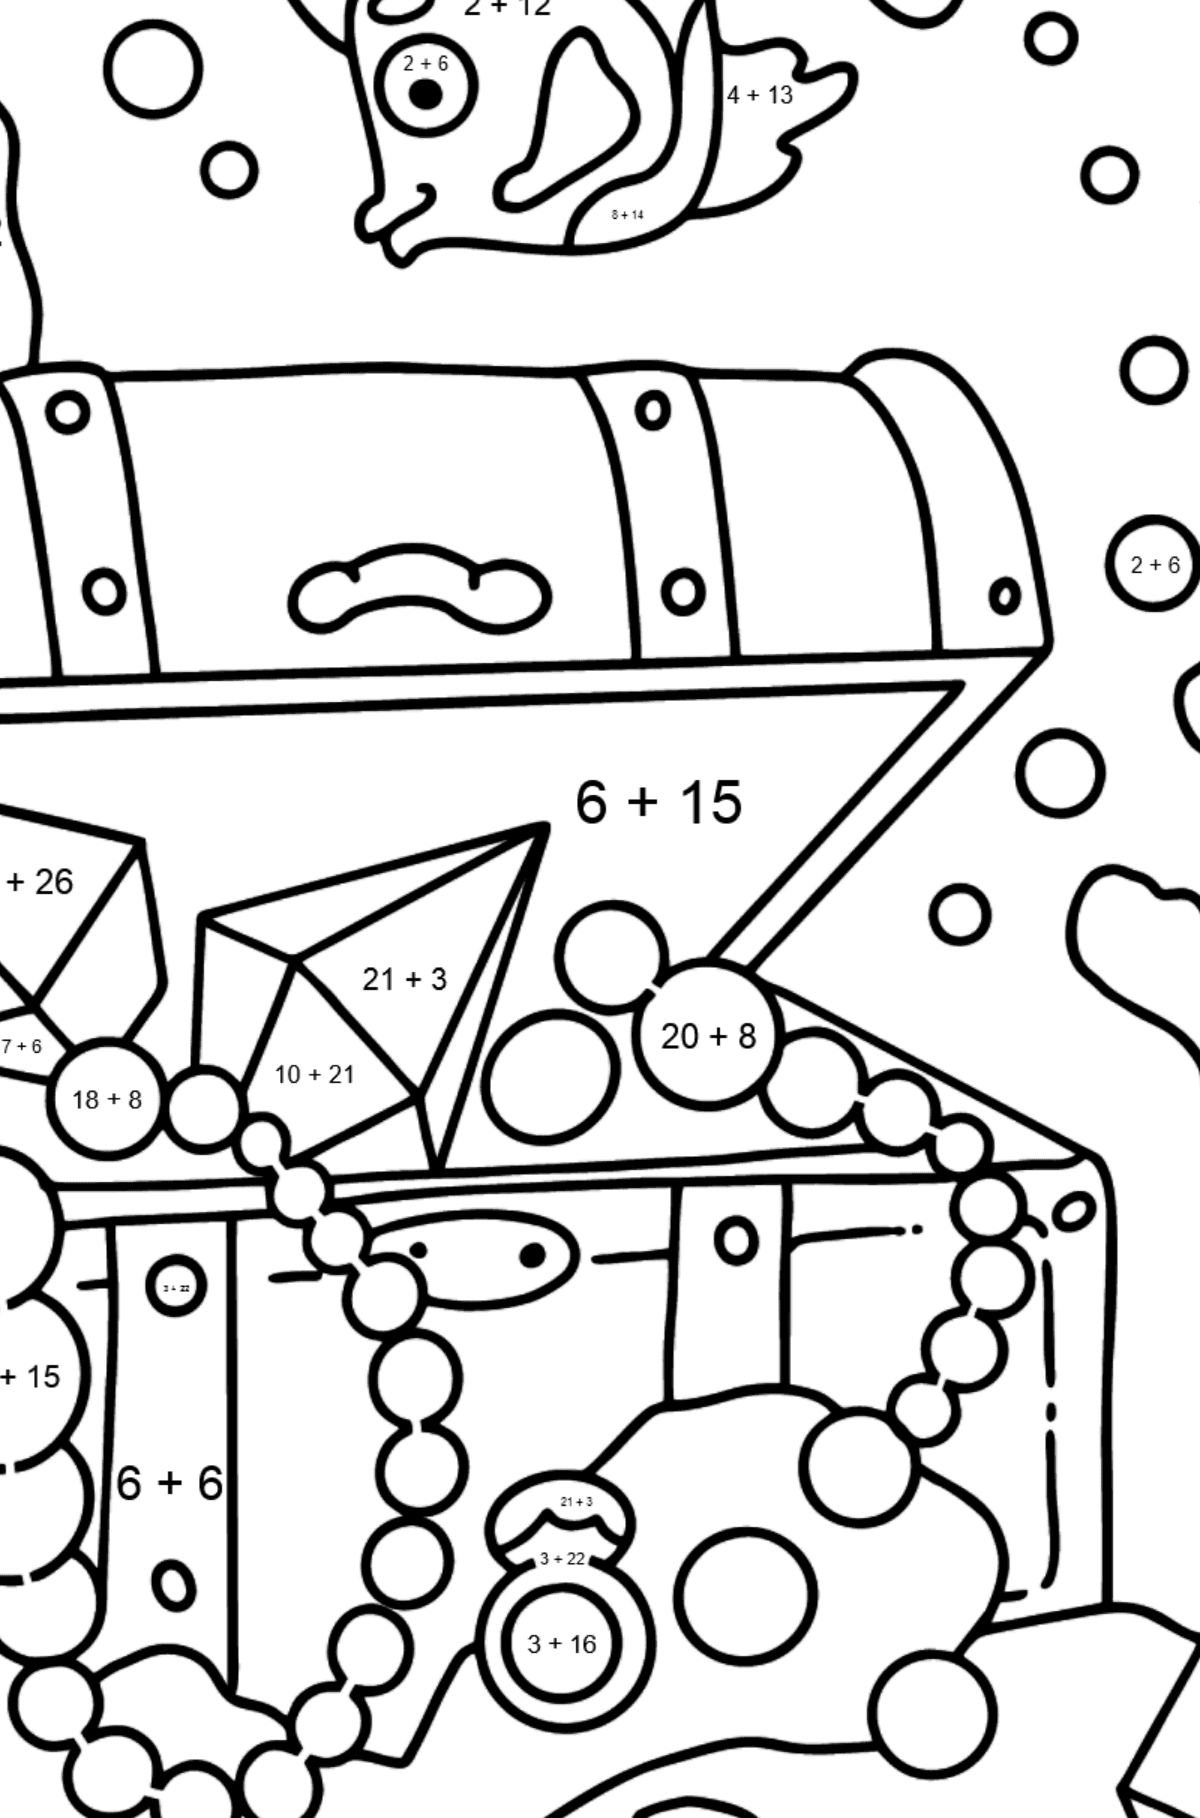 Coloring Page - A Fish is Looking for a Treasure - Math Coloring - Addition for Kids